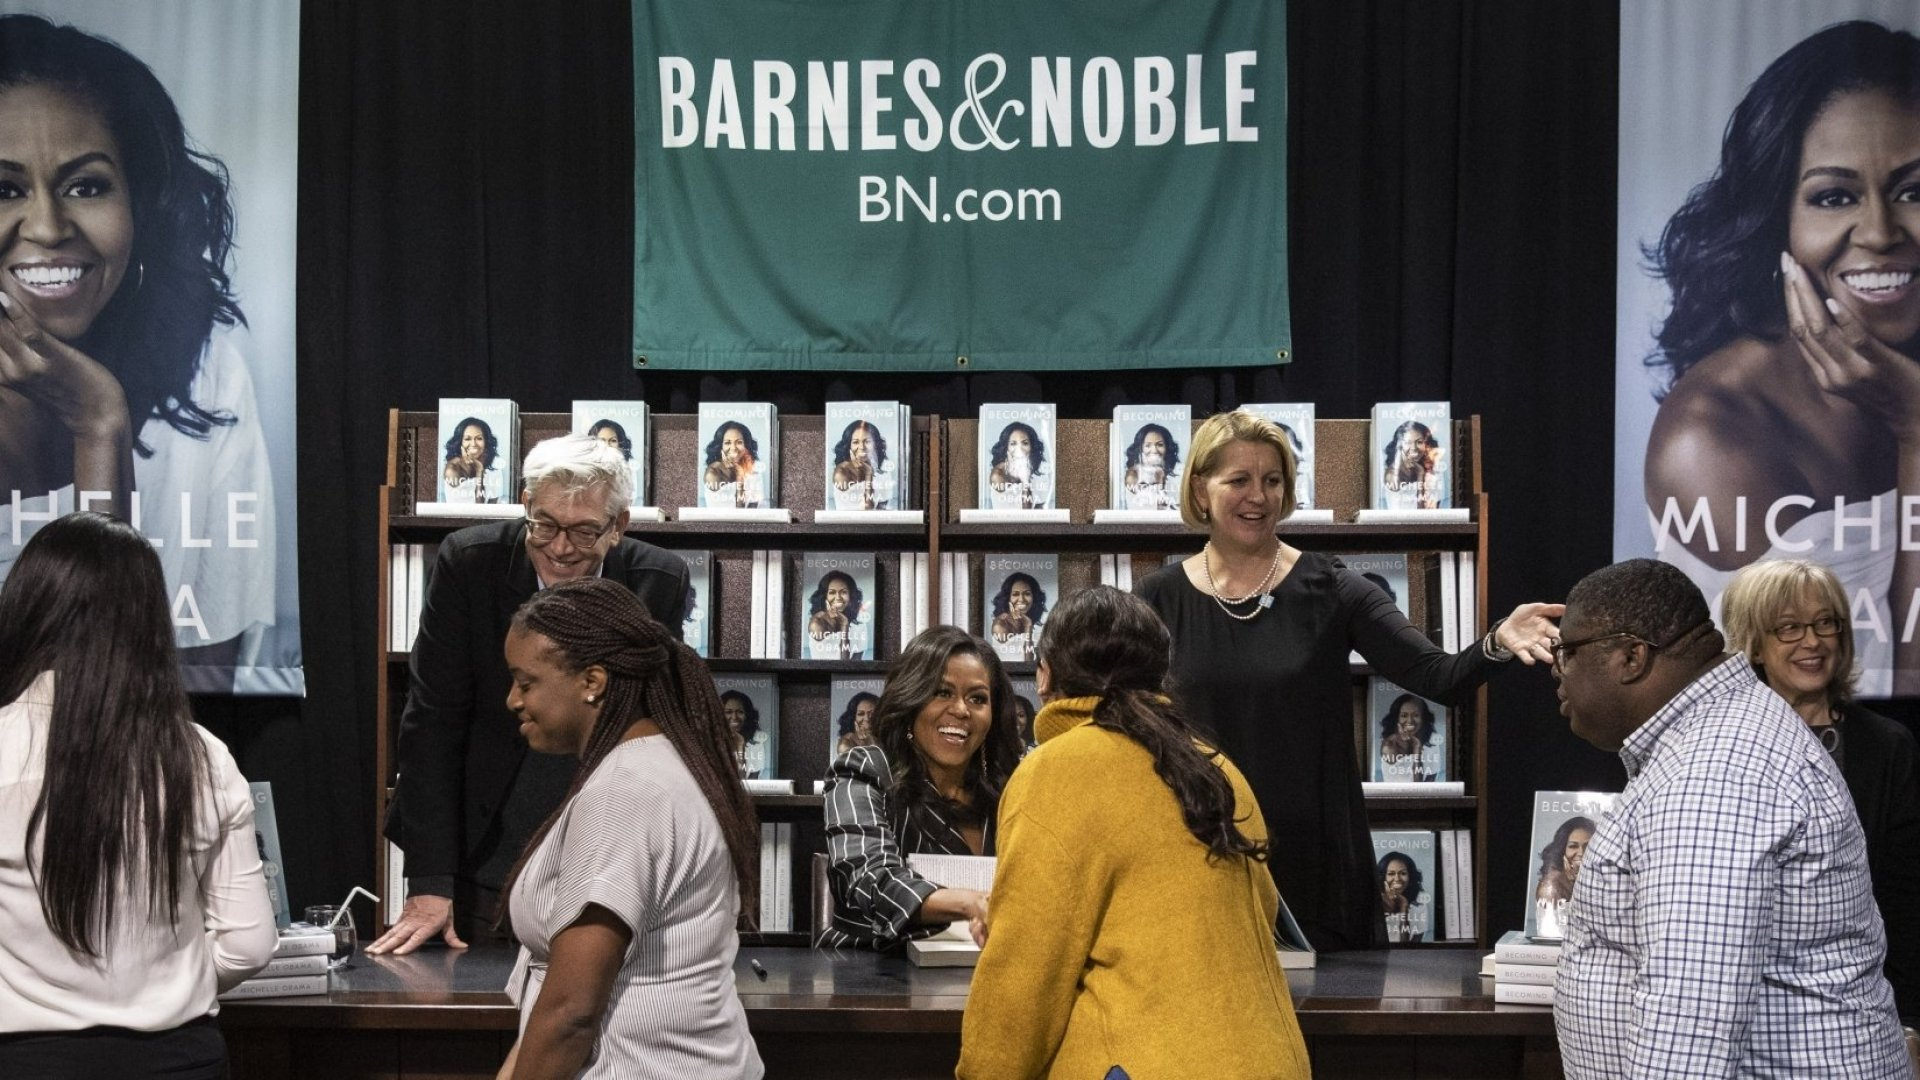 Hedge Fund Buys Barnes & Noble. It Could Be Very Good News for Customers